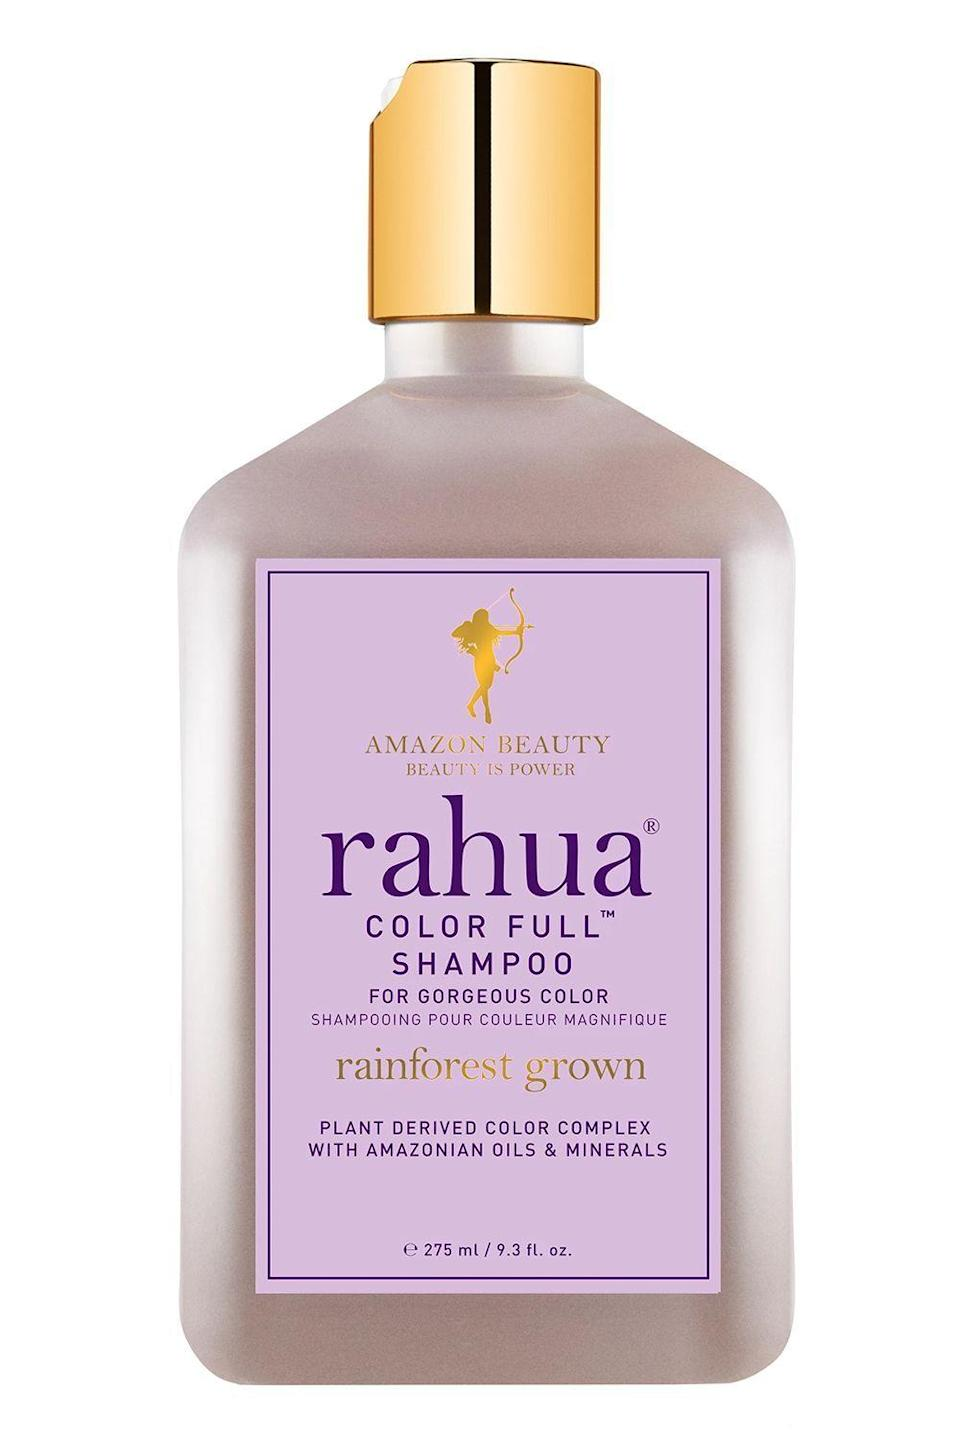 "<p><strong>Rahua</strong></p><p>sephora.com</p><p><strong>$38.00</strong></p><p><a href=""https://go.redirectingat.com?id=74968X1596630&url=https%3A%2F%2Fwww.sephora.com%2Fproduct%2Fcolor-full-shampoo-P417812&sref=https%3A%2F%2Fwww.cosmopolitan.com%2Fstyle-beauty%2Fbeauty%2Fg22740377%2Forganic-shampoo%2F"" rel=""nofollow noopener"" target=""_blank"" data-ylk=""slk:Shop Now"" class=""link rapid-noclick-resp"">Shop Now</a></p><p>This organic, sulfate-free shampoo is <strong>perfect for anyone who has color-treated or <a href=""https://www.cosmopolitan.com/style-beauty/beauty/g29784969/how-to-bleach-hair-at-home/"" rel=""nofollow noopener"" target=""_blank"" data-ylk=""slk:bleached hair"" class=""link rapid-noclick-resp"">bleached hair</a></strong>. It uses Amazonian rahua oil to strengthen each strand and lock in color, plus morete fruit extract, which is rich in vitamins A, C, and E. Together, these vitamins help protect hair from UV damage, and in turn, keep your color looking fresh and vibrant.</p>"